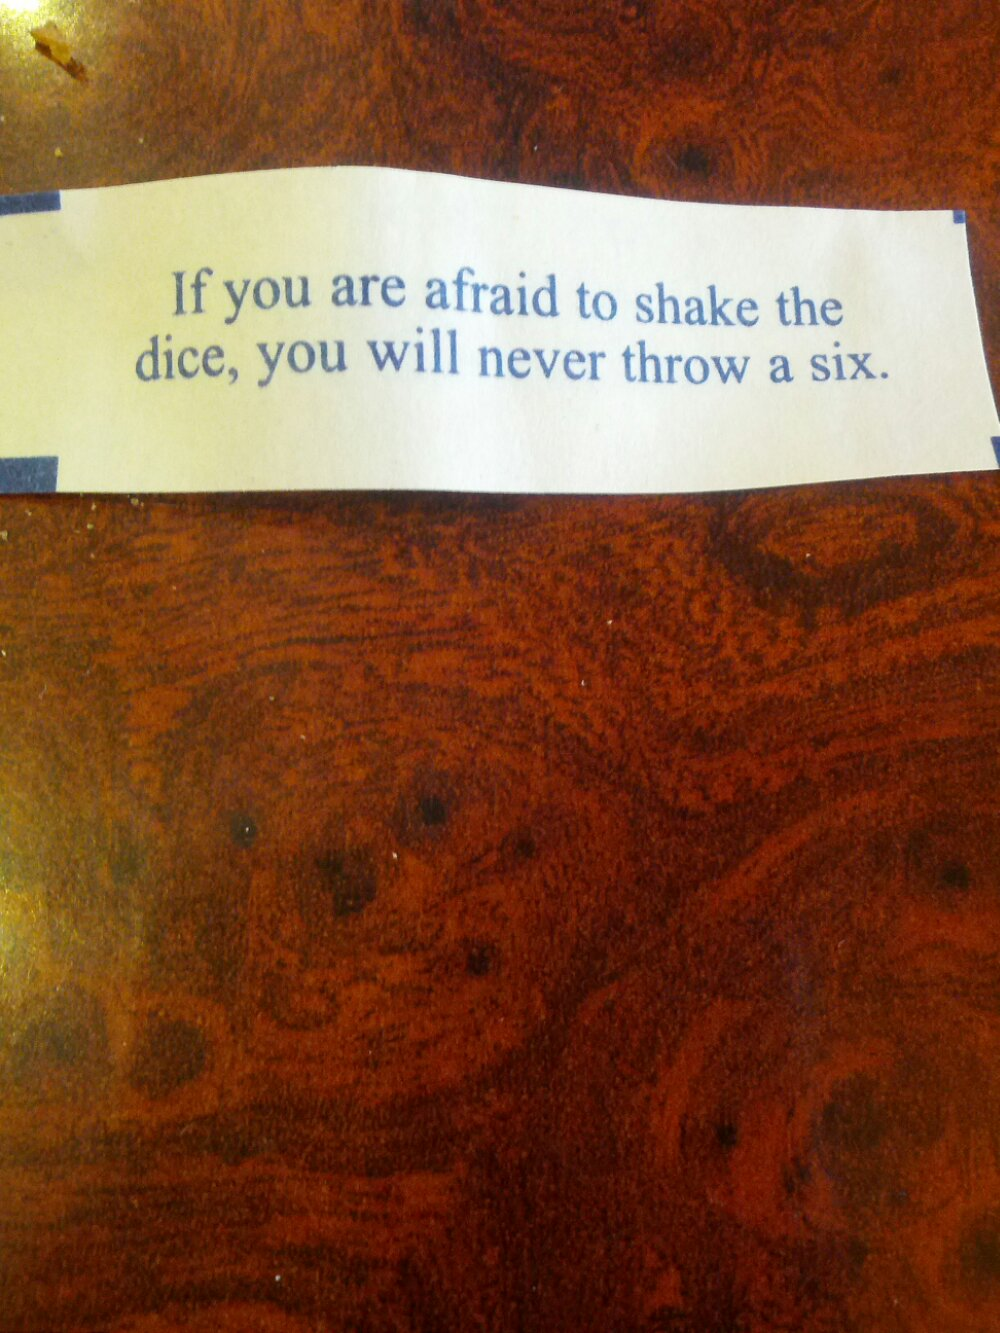 Today's Fortune Cookie